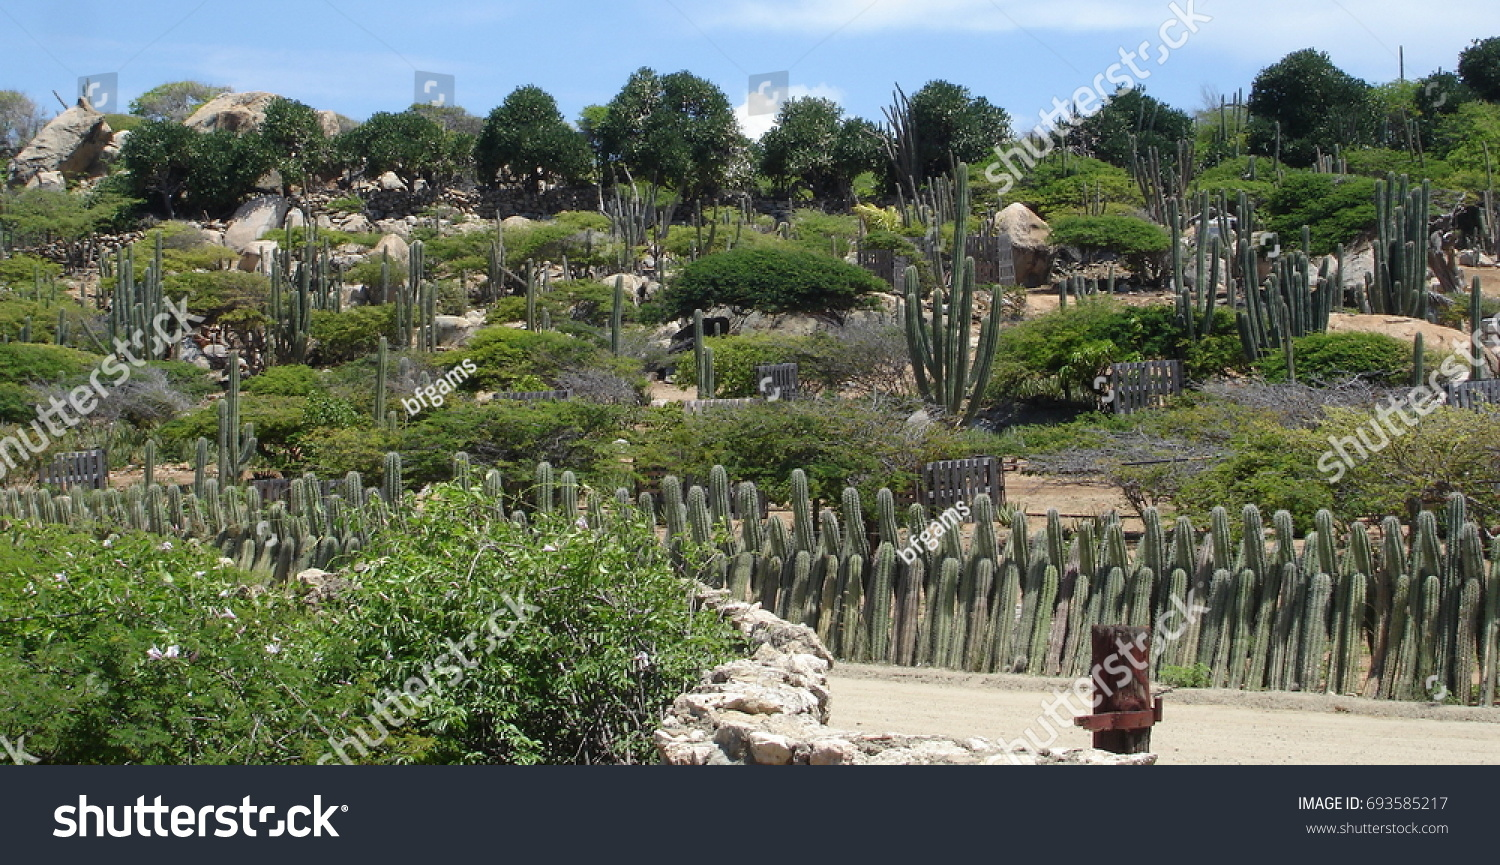 Cactus Garden On A Hill